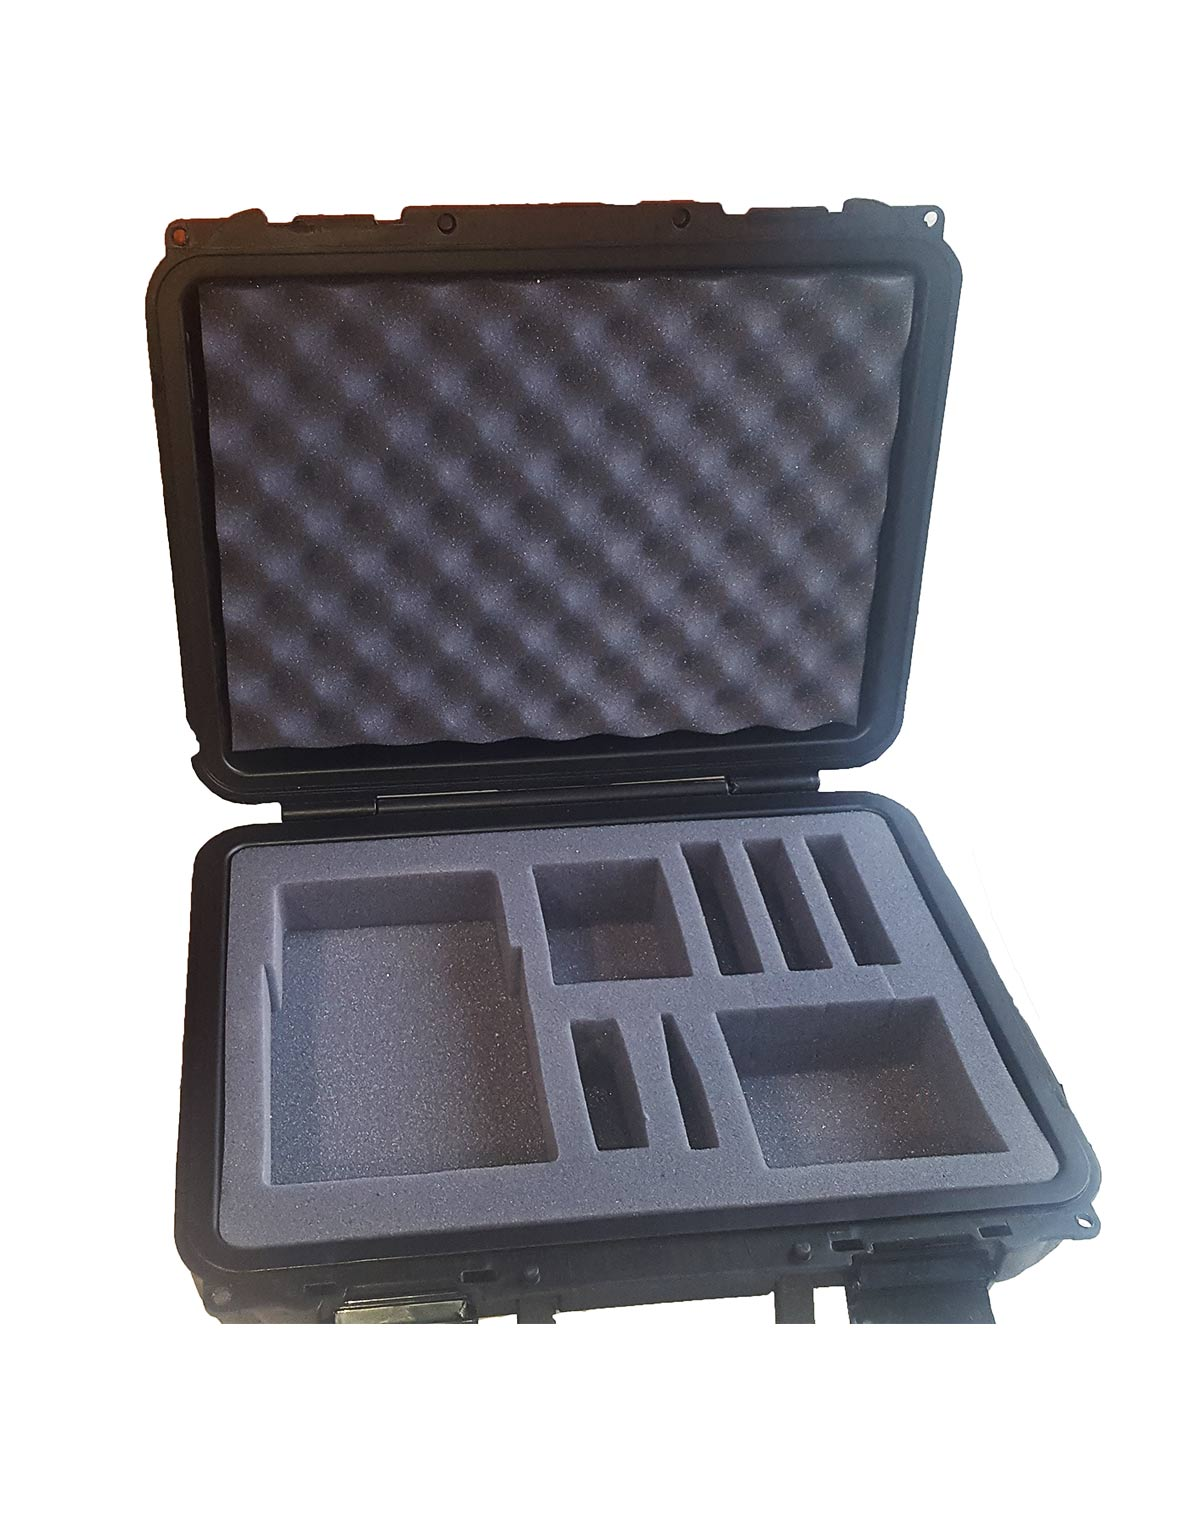 AT34™ Hard Case (holds the instrument, leads, & charger)